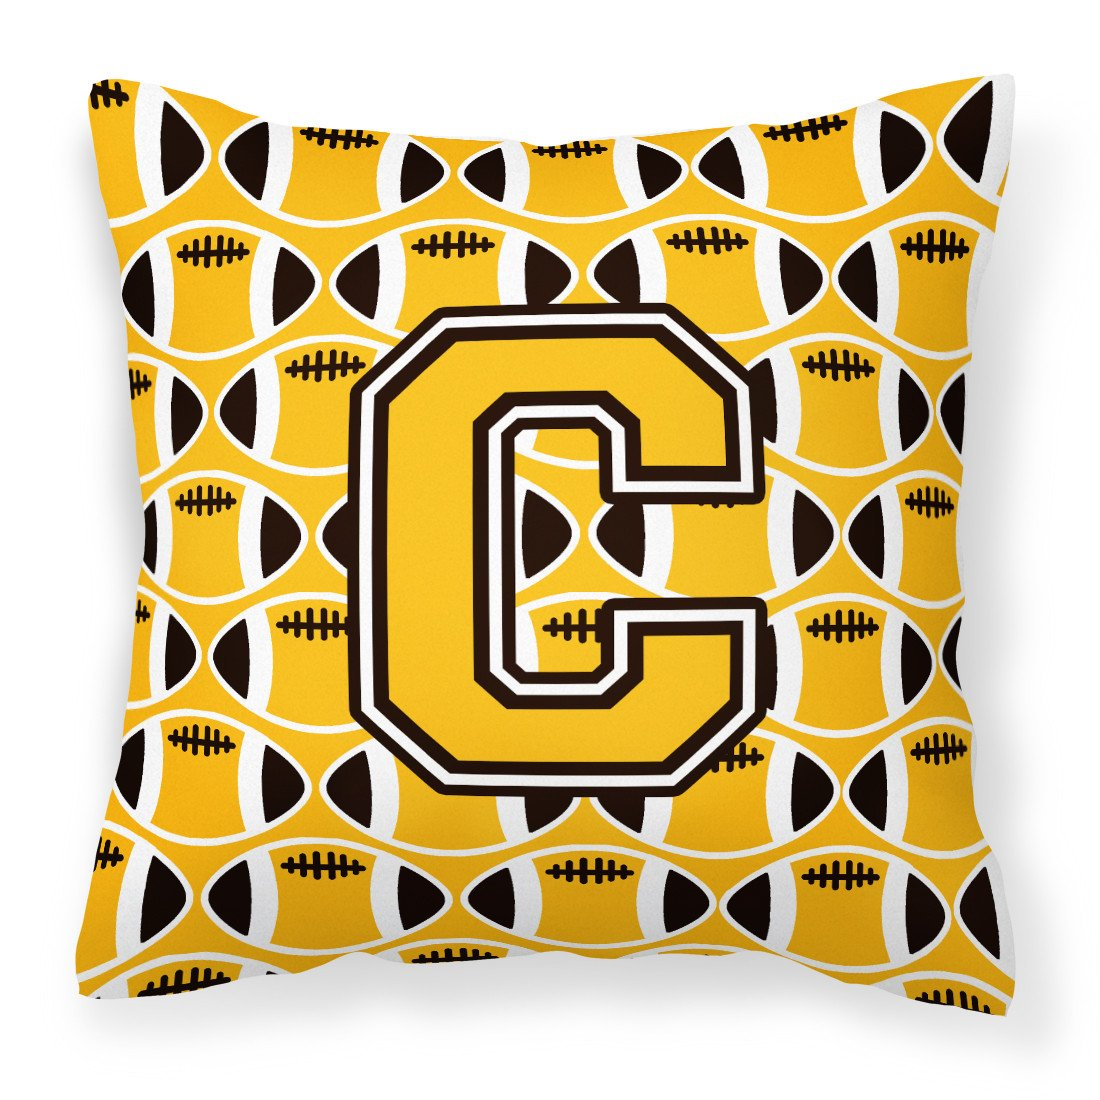 Letter C Football Black, Old Gold and White Fabric Decorative Pillow CJ1080-CPW1414 by Caroline's Treasures